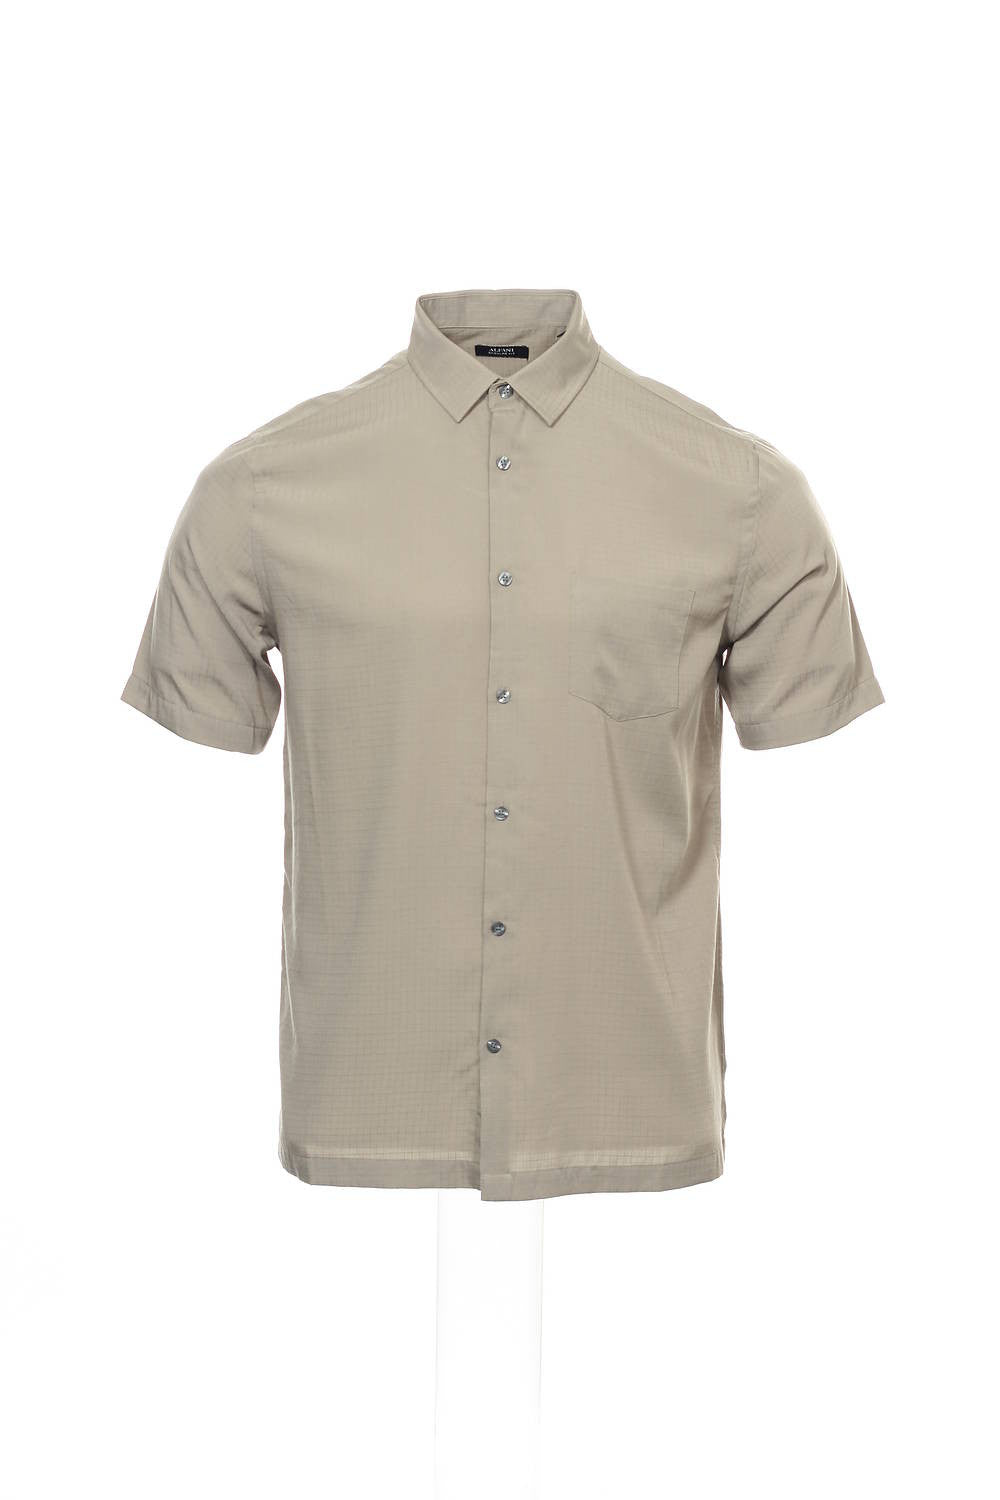 Alfani Mens Taupe Checked Camp Shirt